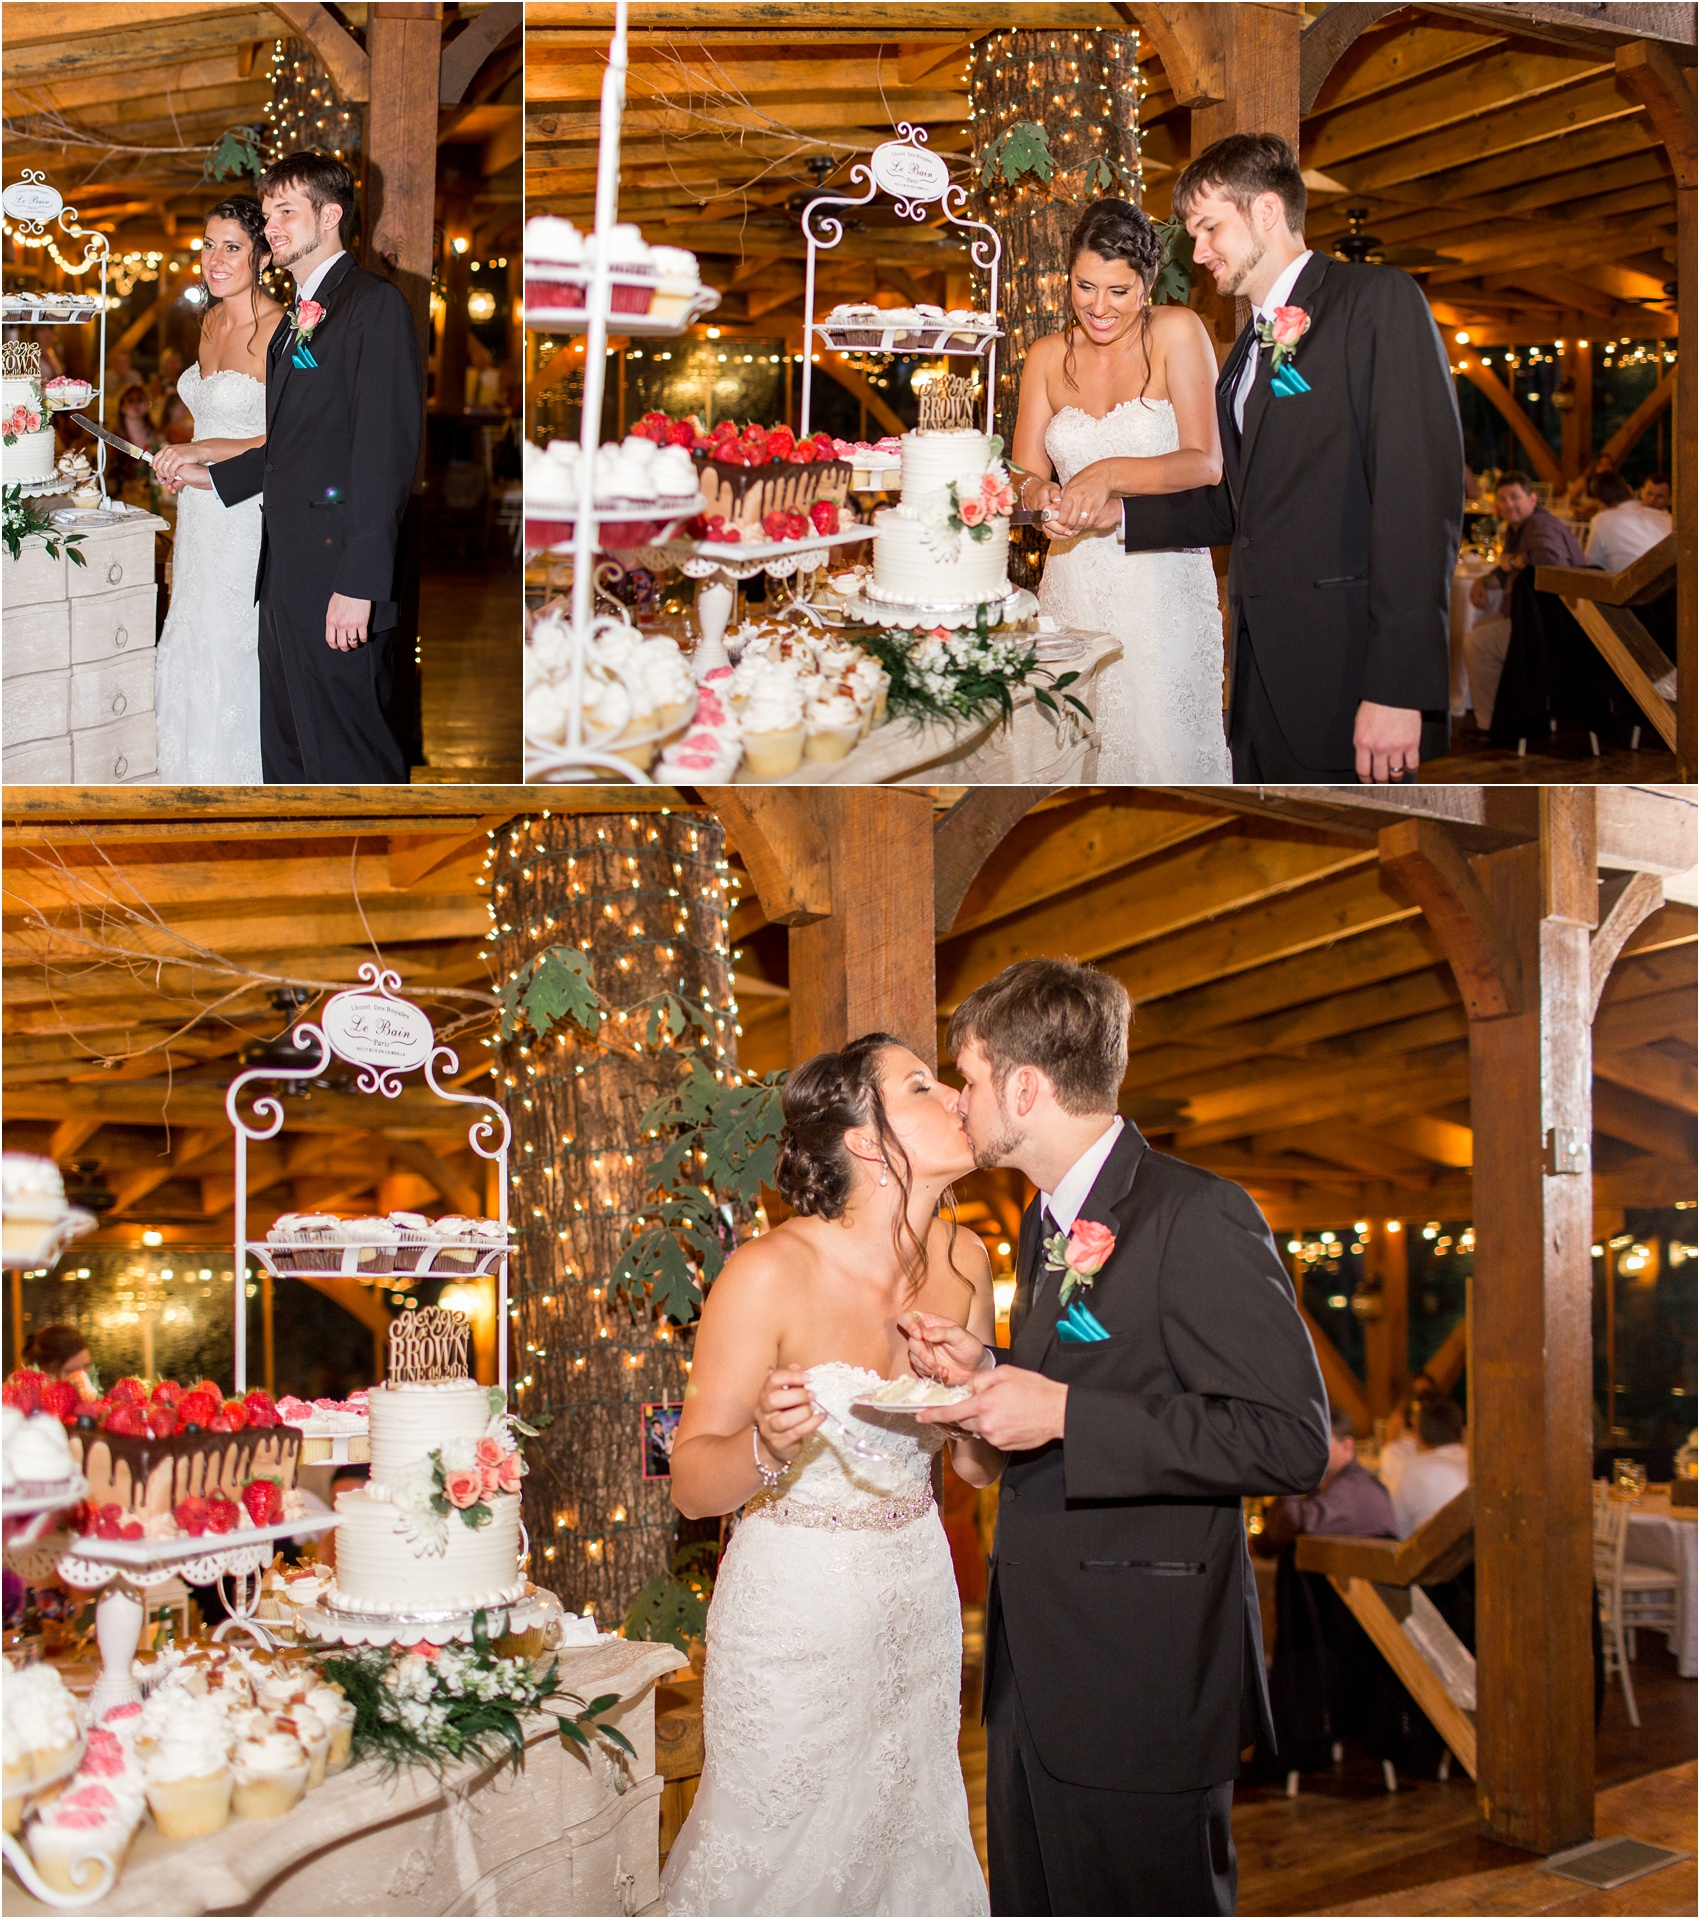 Savannah Eve Photography- Roberts-Brown Wedding- Sneak Peek-98.jpg